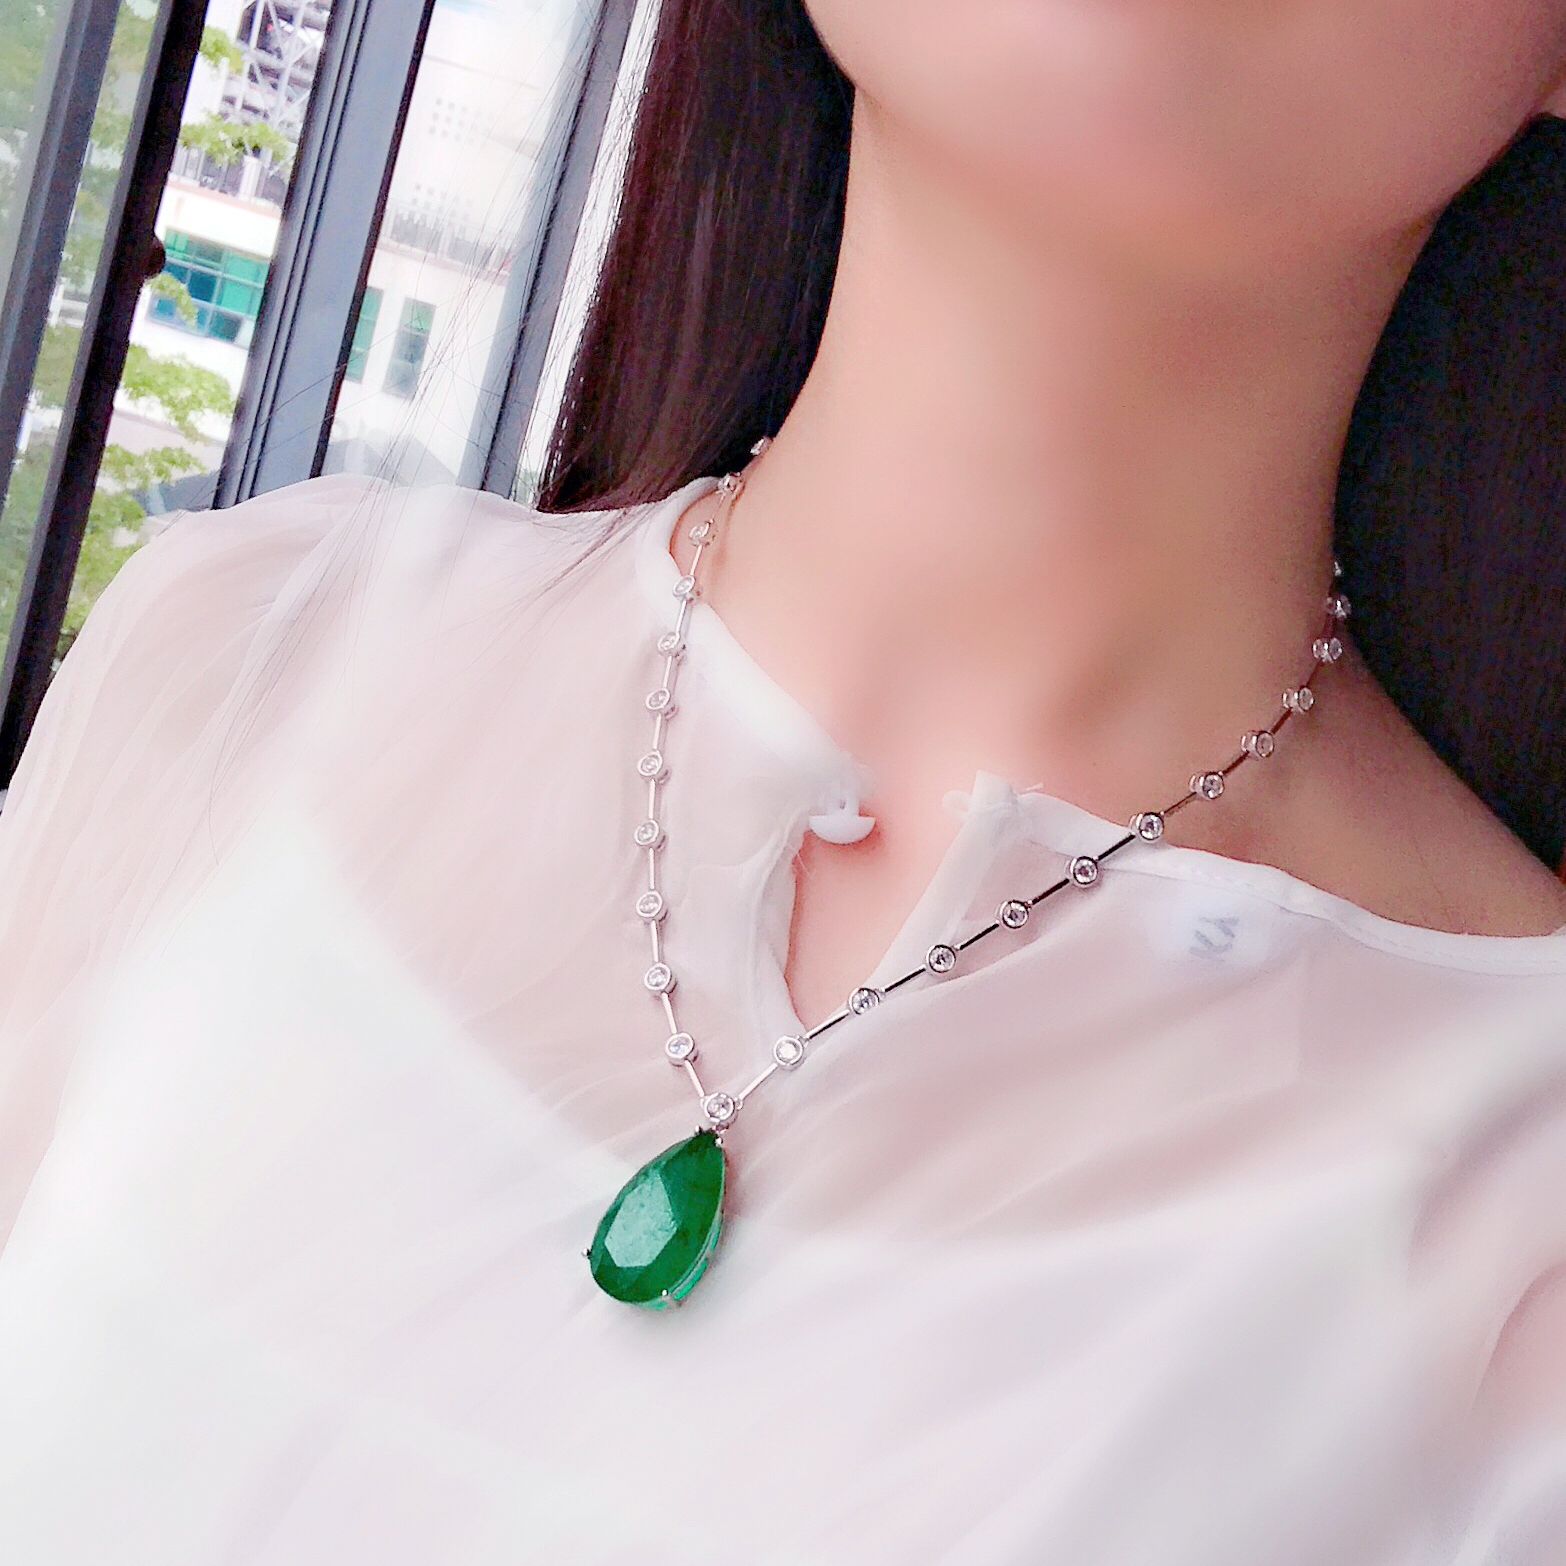 Dinner Simple Green Clavicle Chain S925 Sterling Silver Green Stone Necklace Drop Pendant Bag Beads Chain Atmosphere FemaleDinner Simple Green Clavicle Chain S925 Sterling Silver Green Stone Necklace Drop Pendant Bag Beads Chain Atmosphere Female